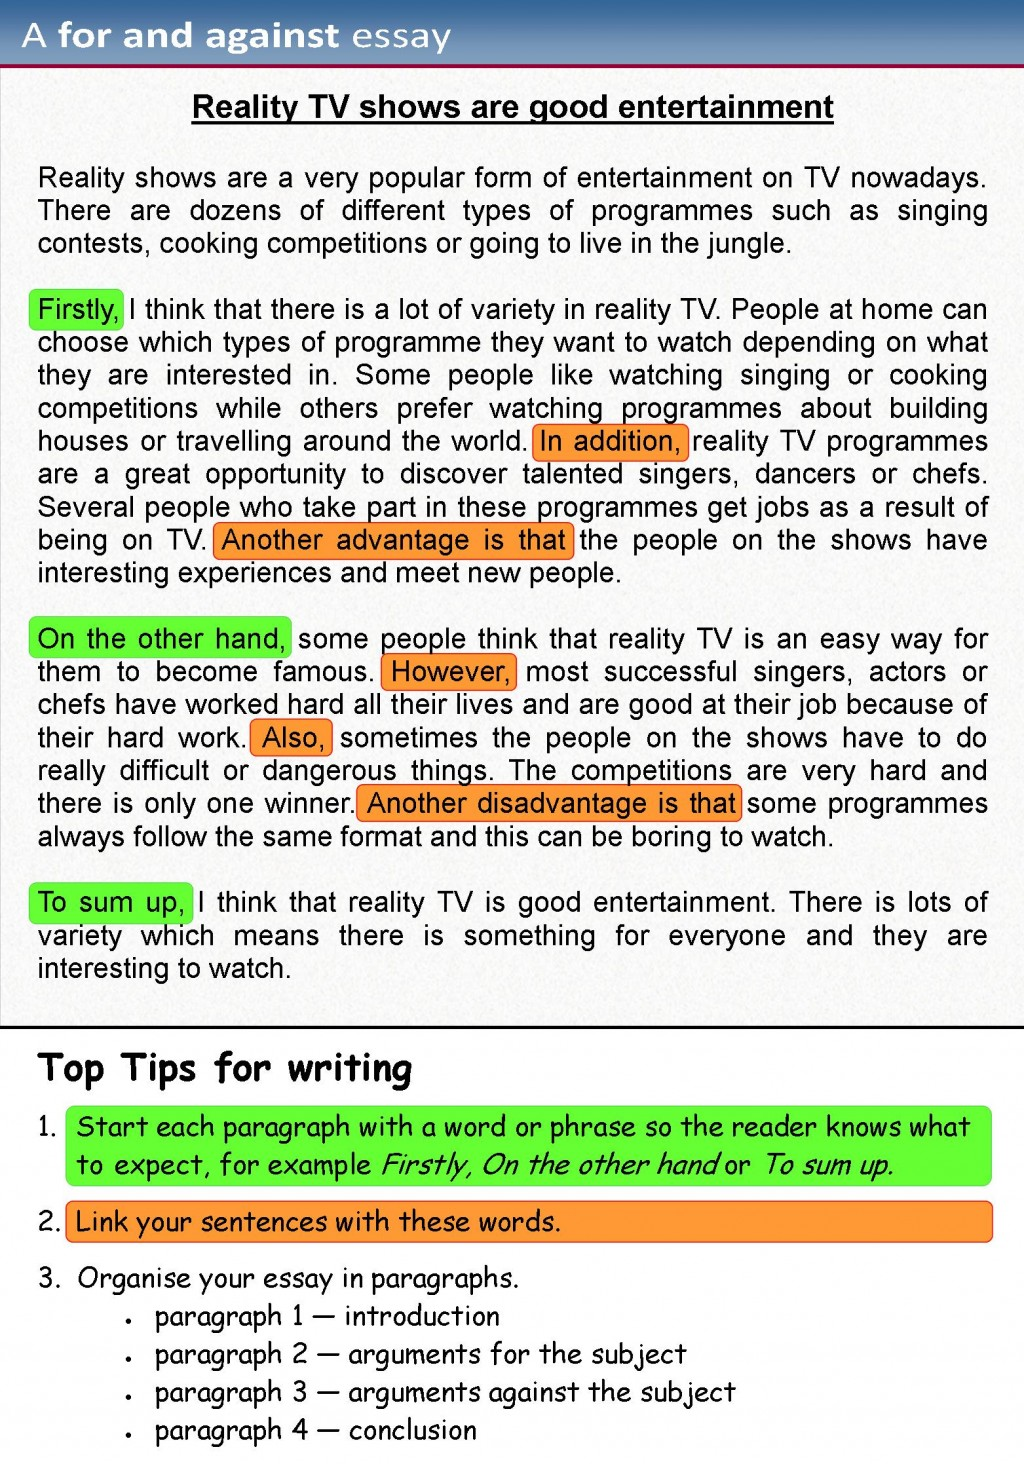 002 Another Word For Essay Example Fantastic Argumentative Question This Will Large